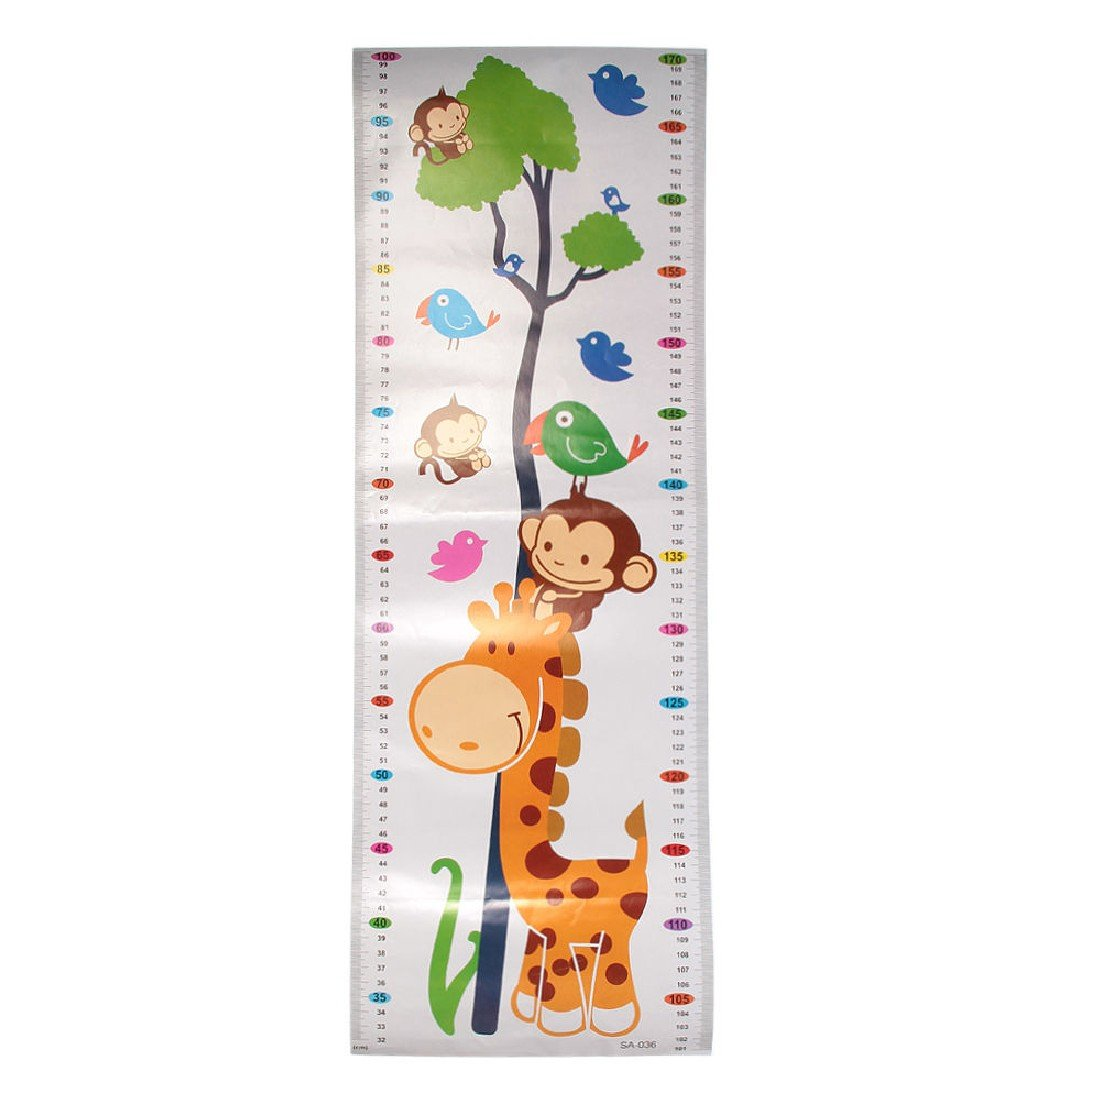 1Pc Height Chart Growth Measure Decal Wall Sticker For Kids Removable Pvc Cartoon Art Mural Children ASTrade